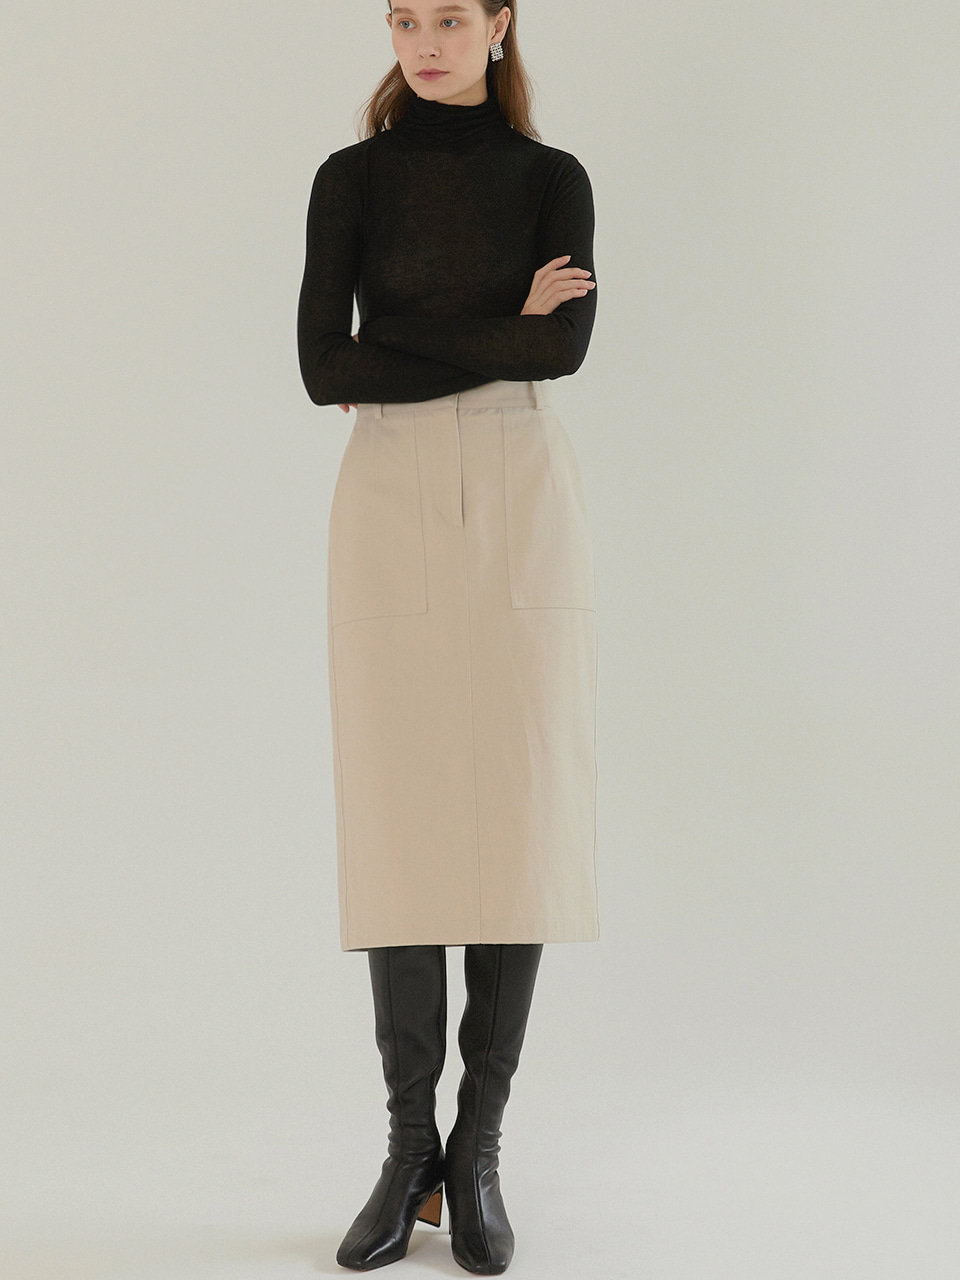 JESS_Cotton Twill Straight Midi Skirt_SAND BEIGE